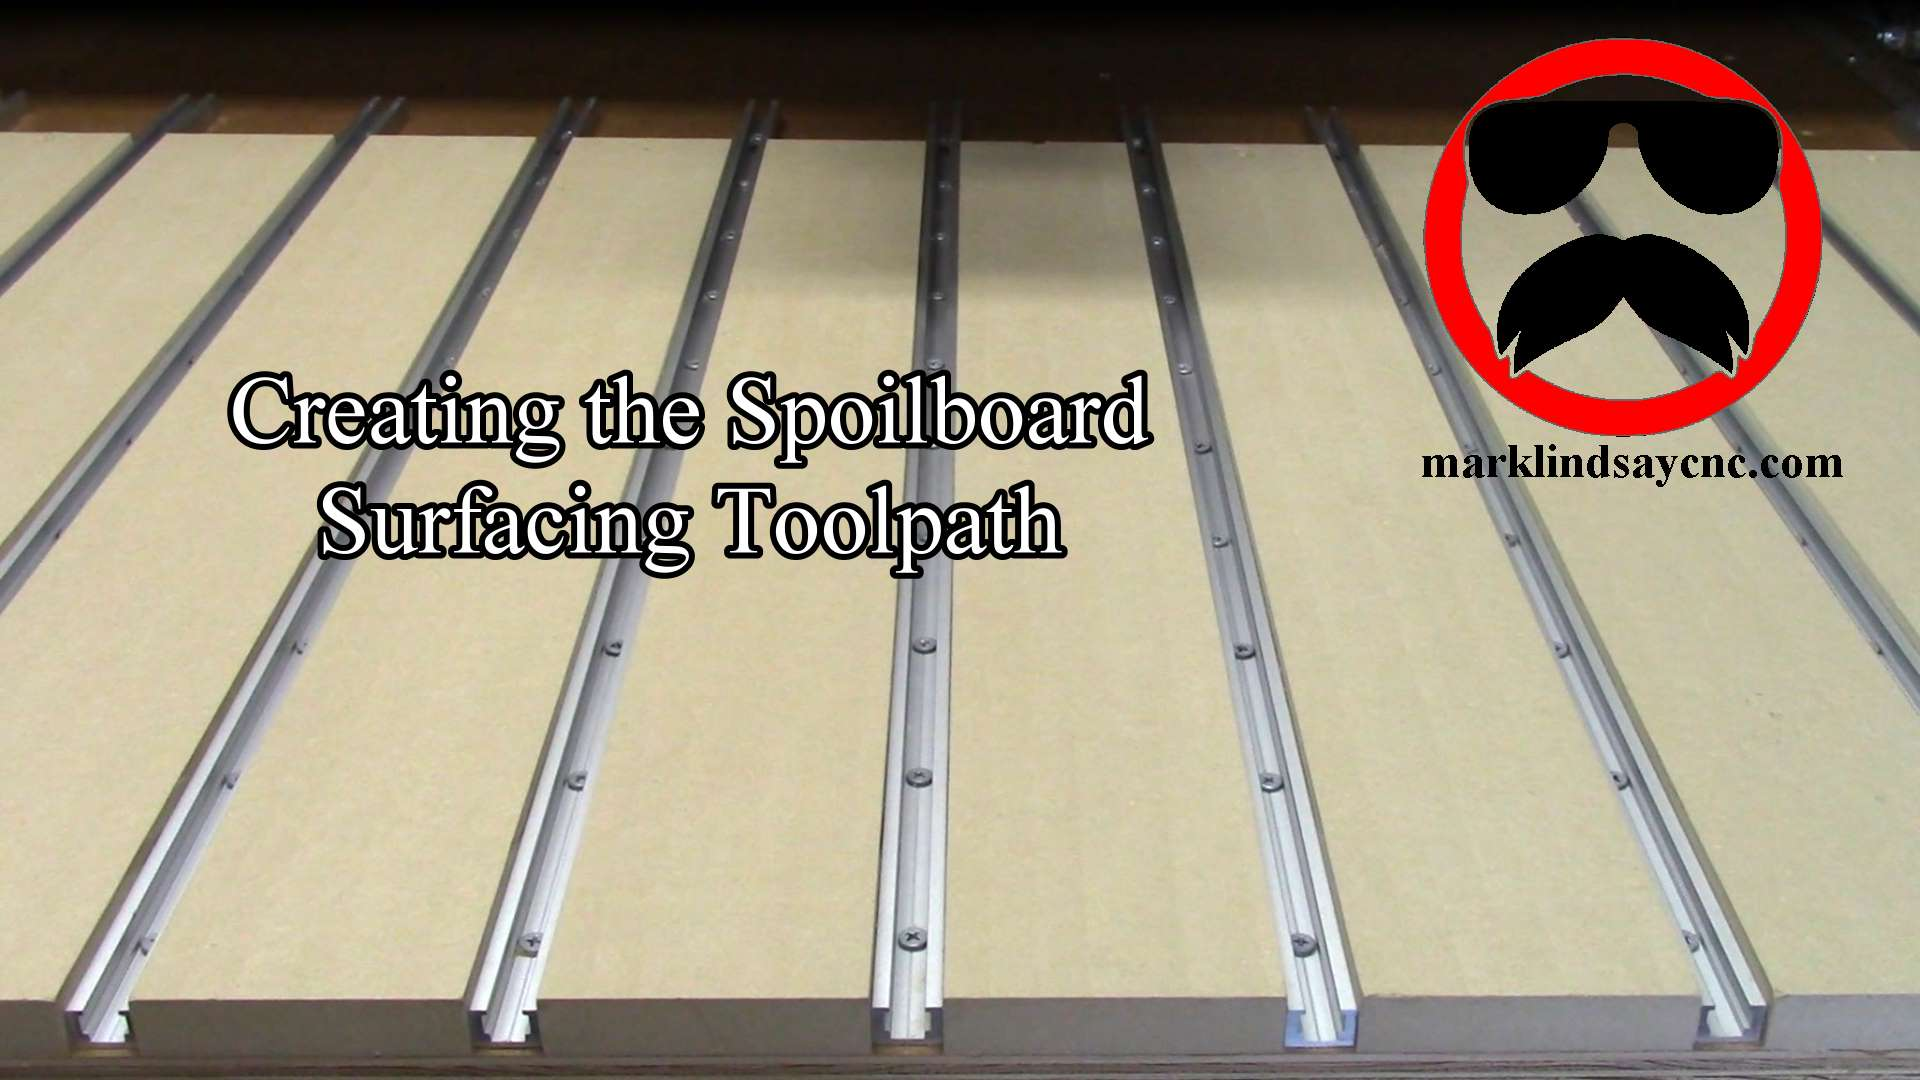 Creating a Spoilboard Surfacing Toolpath in VCarve